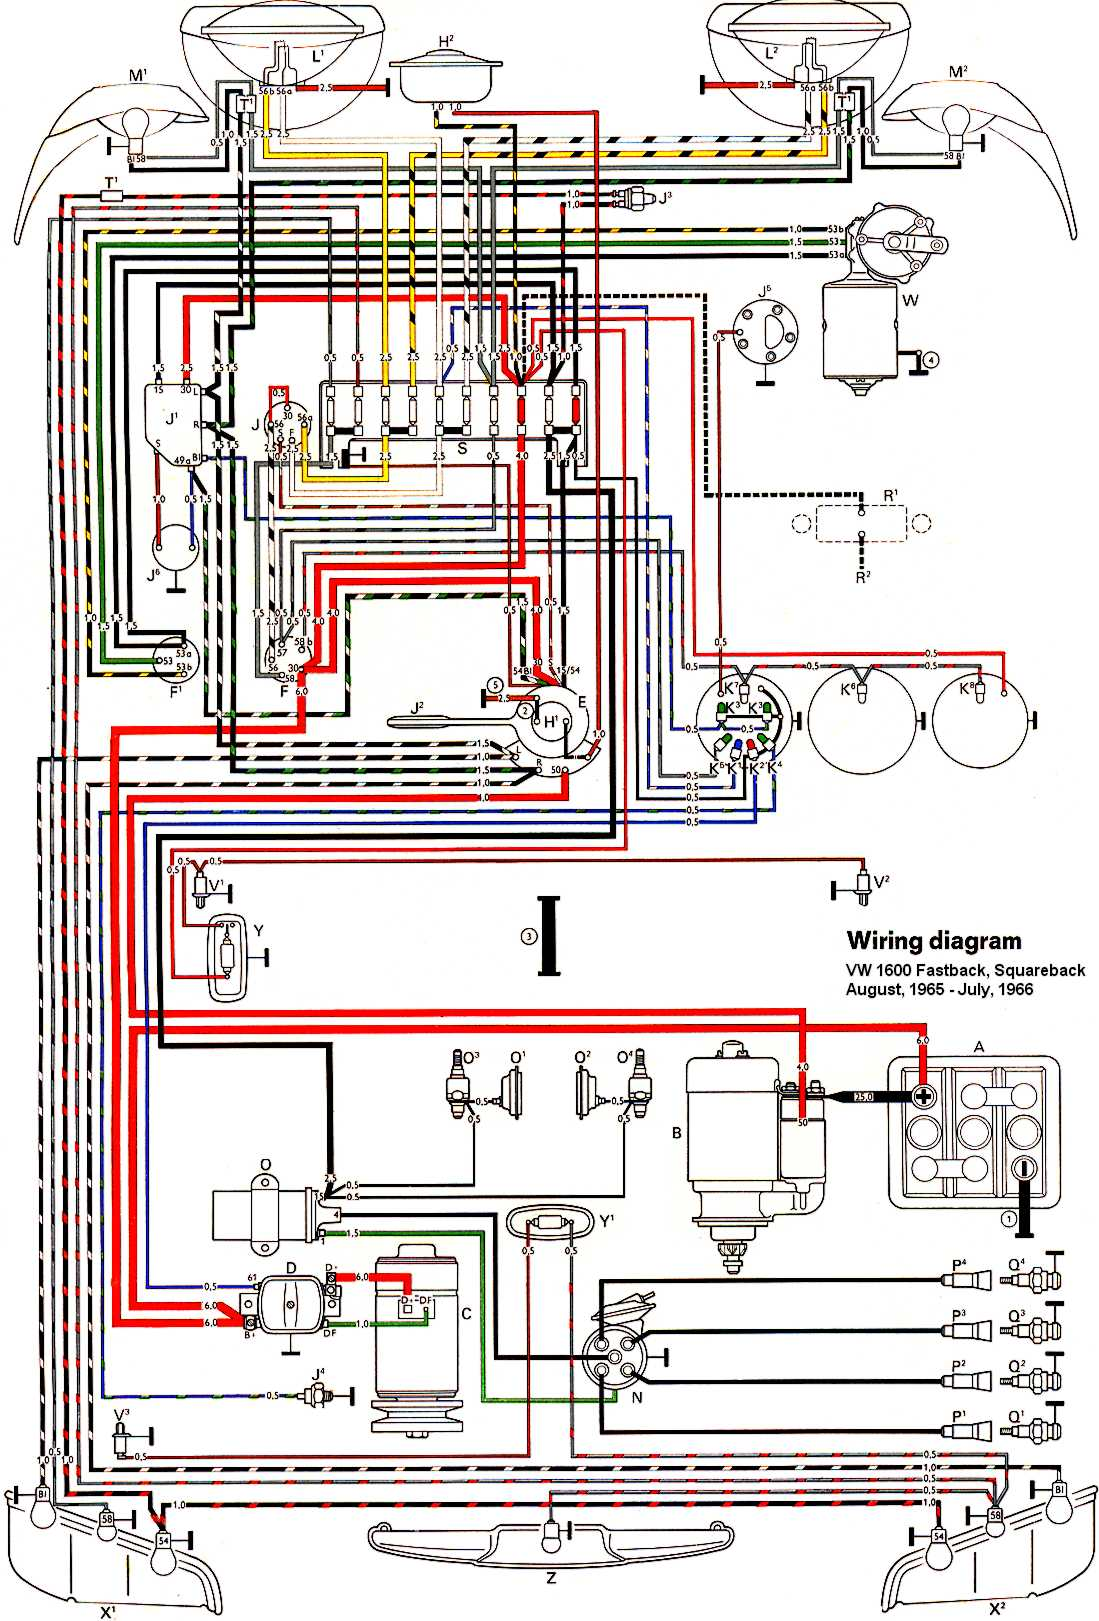 type3_1600_66 wiring diagram vw up explore wiring diagram on the net \u2022